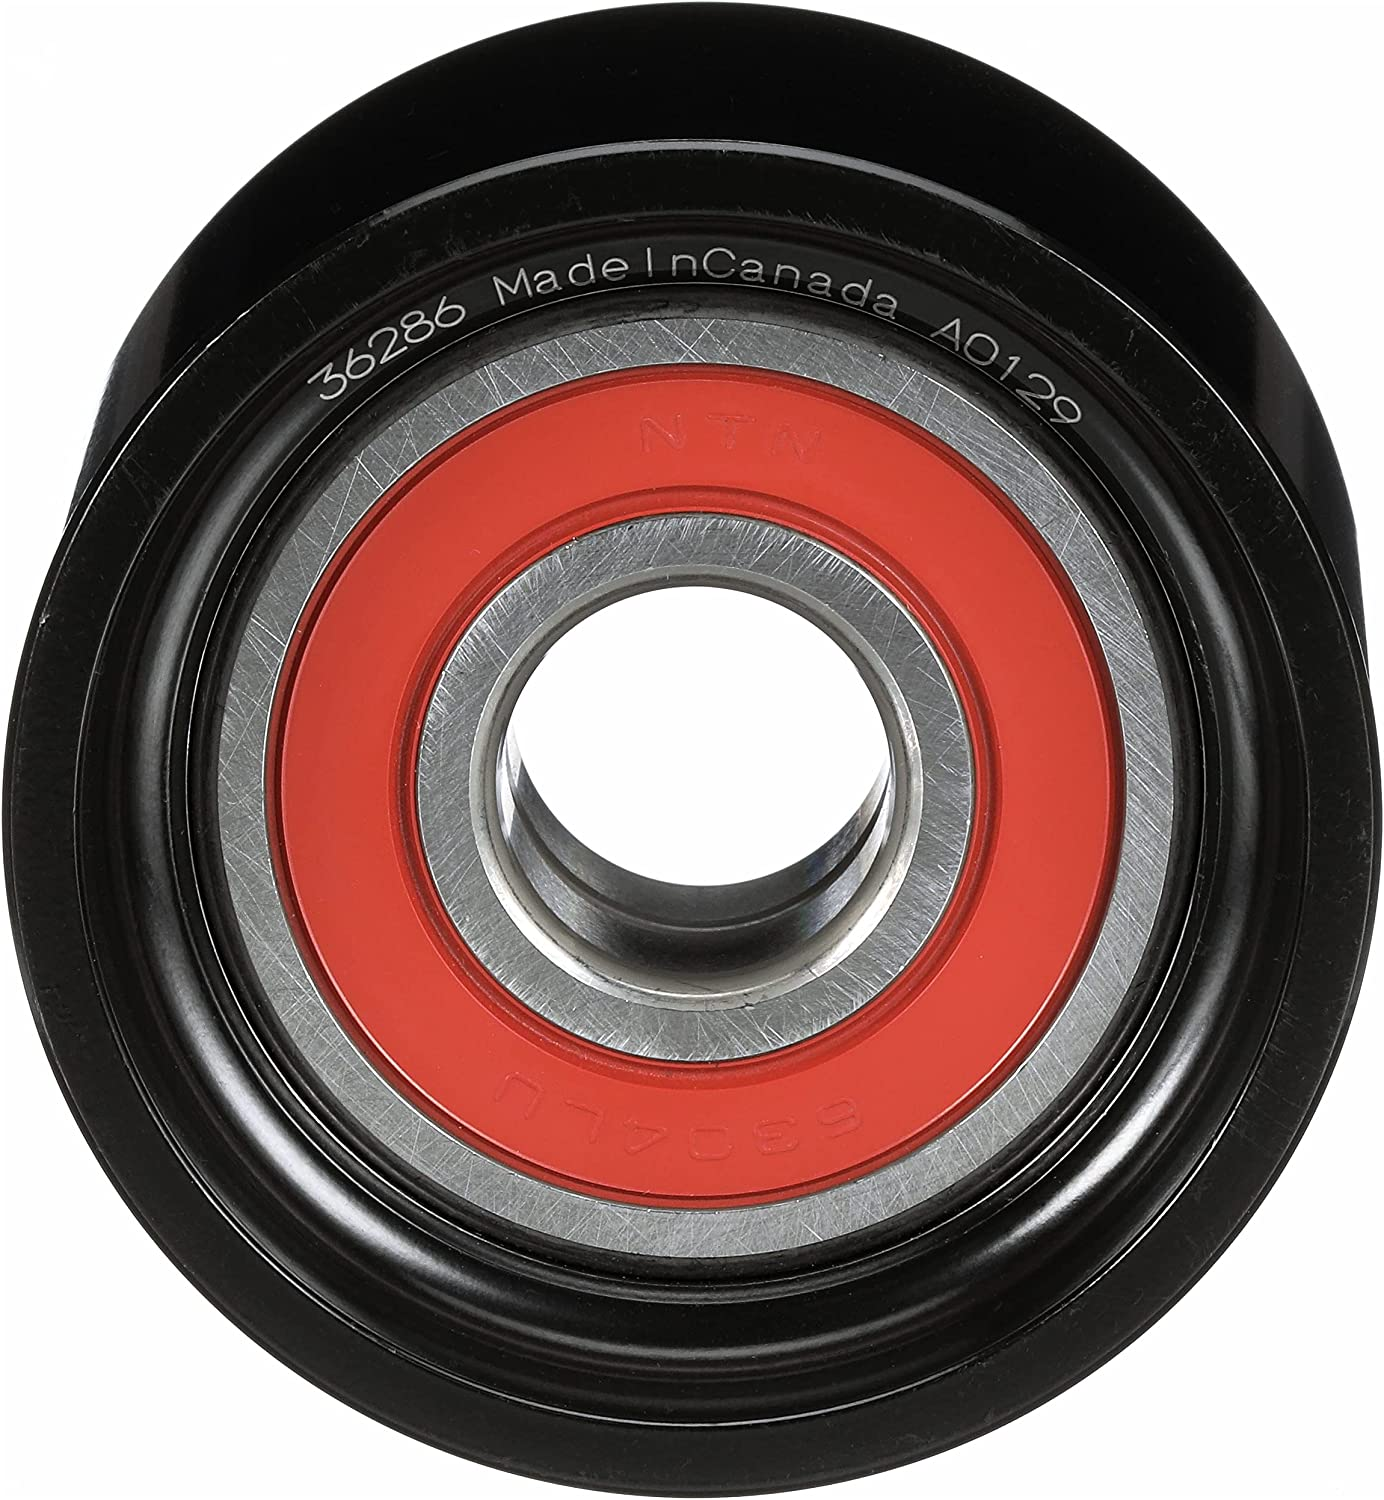 Max 89% OFF Gates 36286 DriveAlign Belt Tensioner Drive Idler Pulley Safety and trust